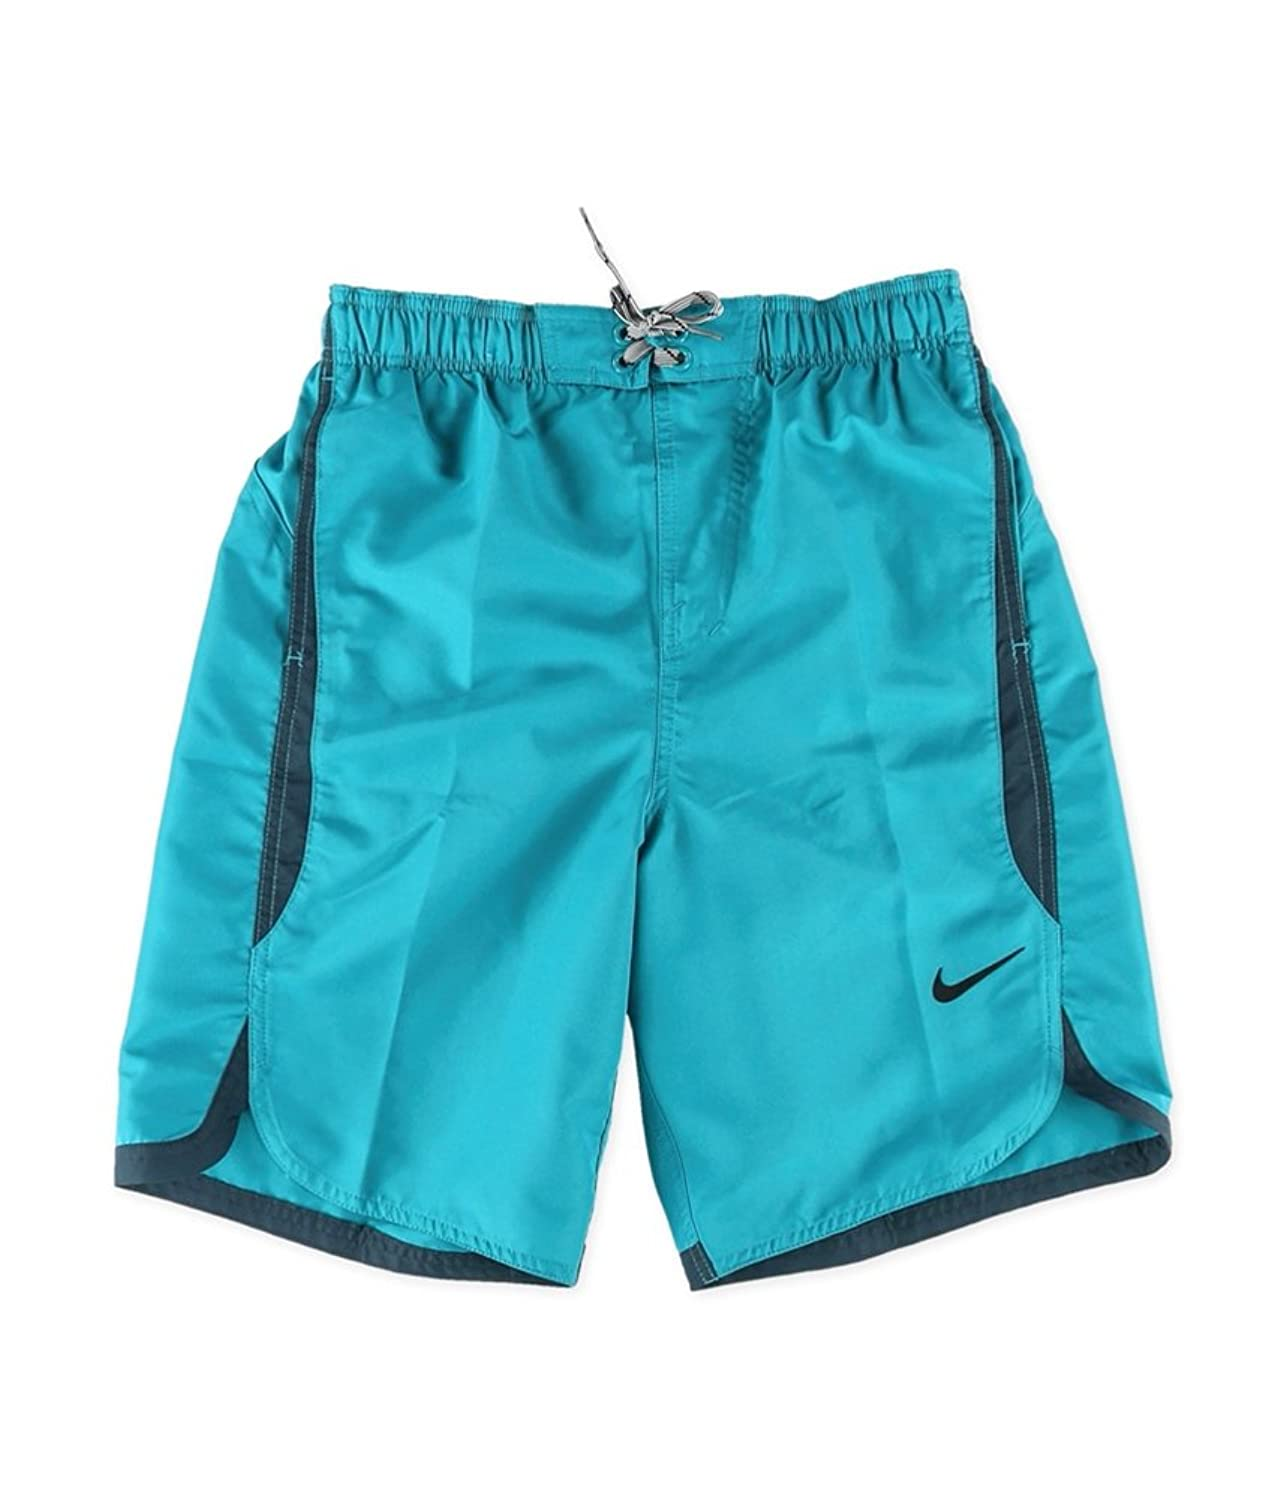 Nike Mens Core Rapid 9' Volley Swim Bottom Board Shorts